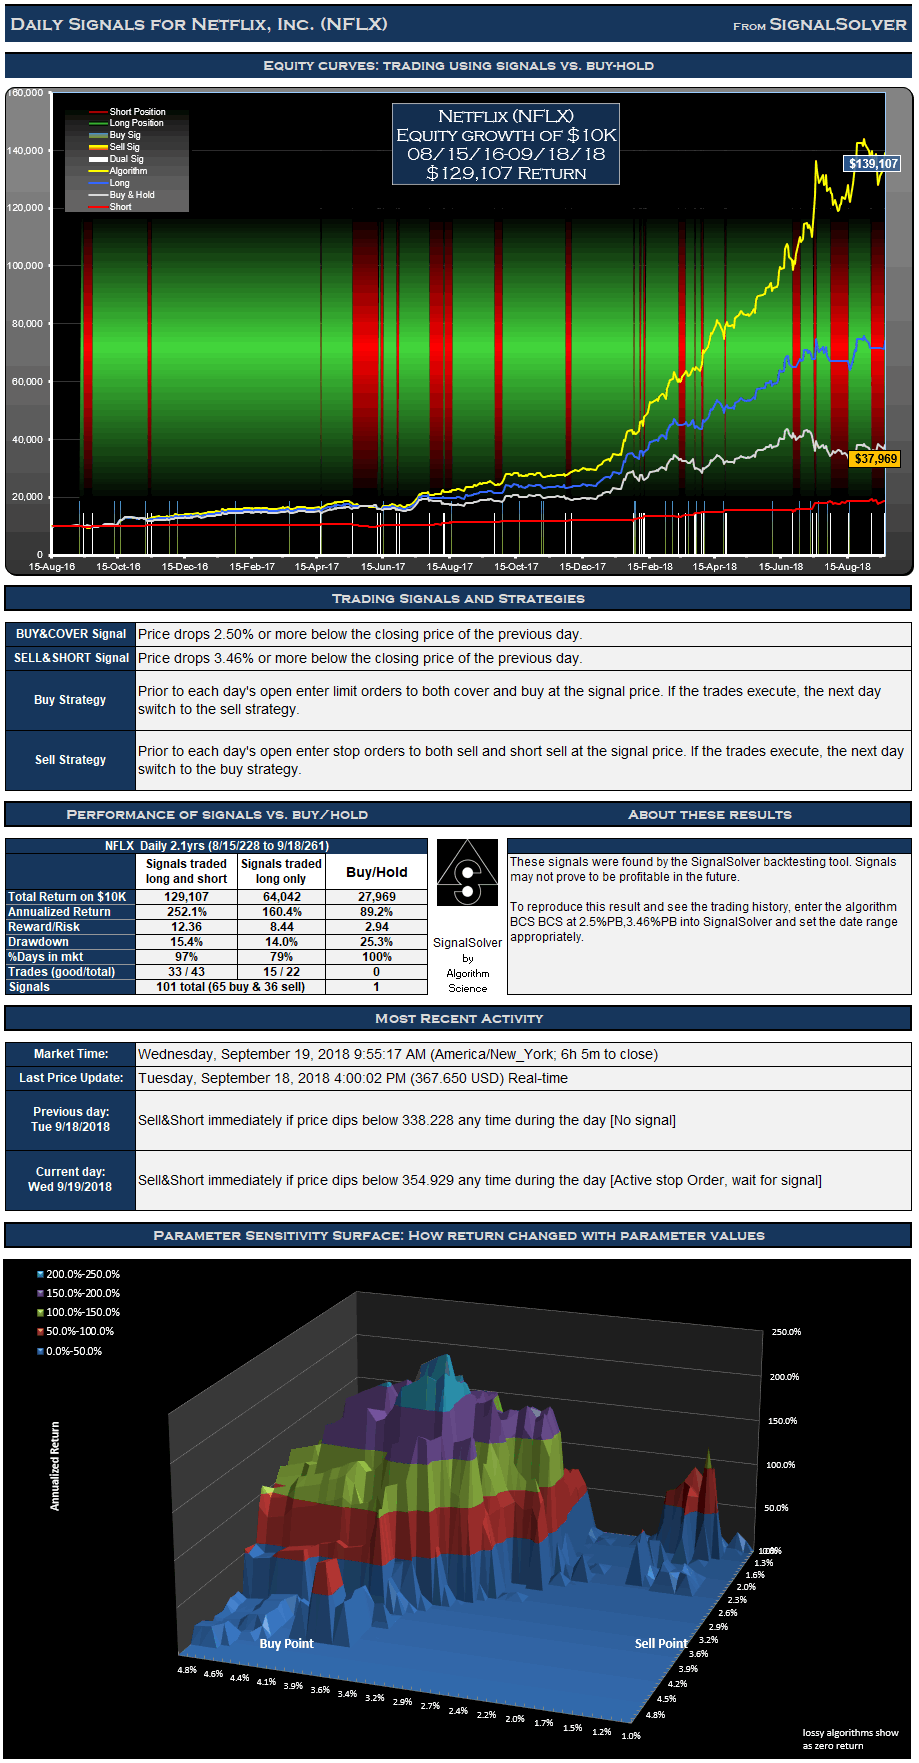 NFLX Signals Daily